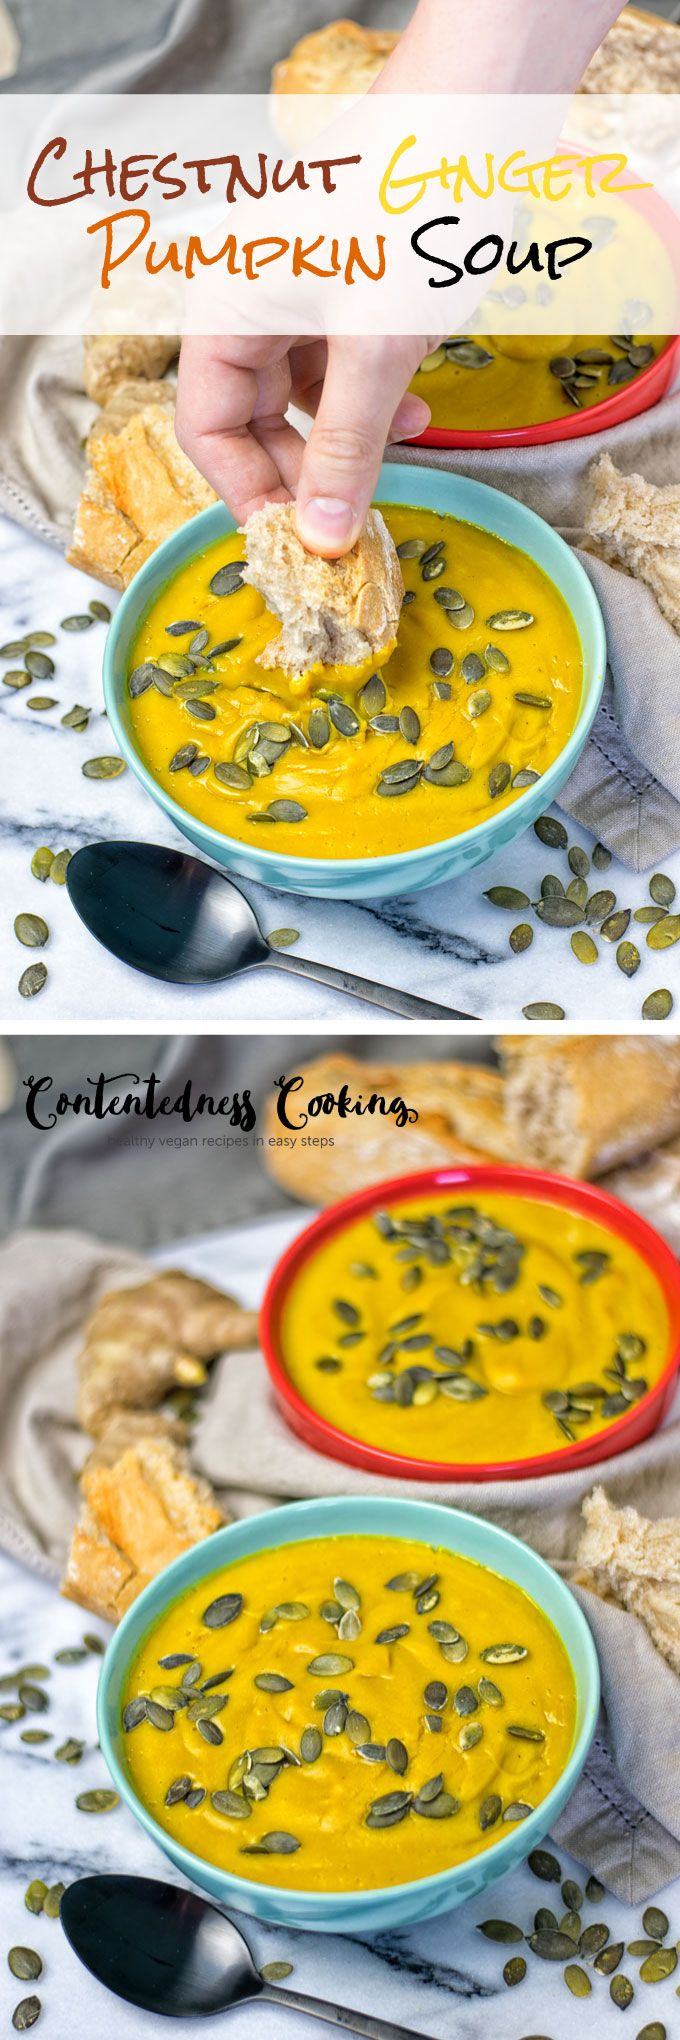 My Chestnut Ginger Pumpkin Soup is the best fall soup, satisfying, and warming. It is made from only 5 ingredients and 2 easy steps.